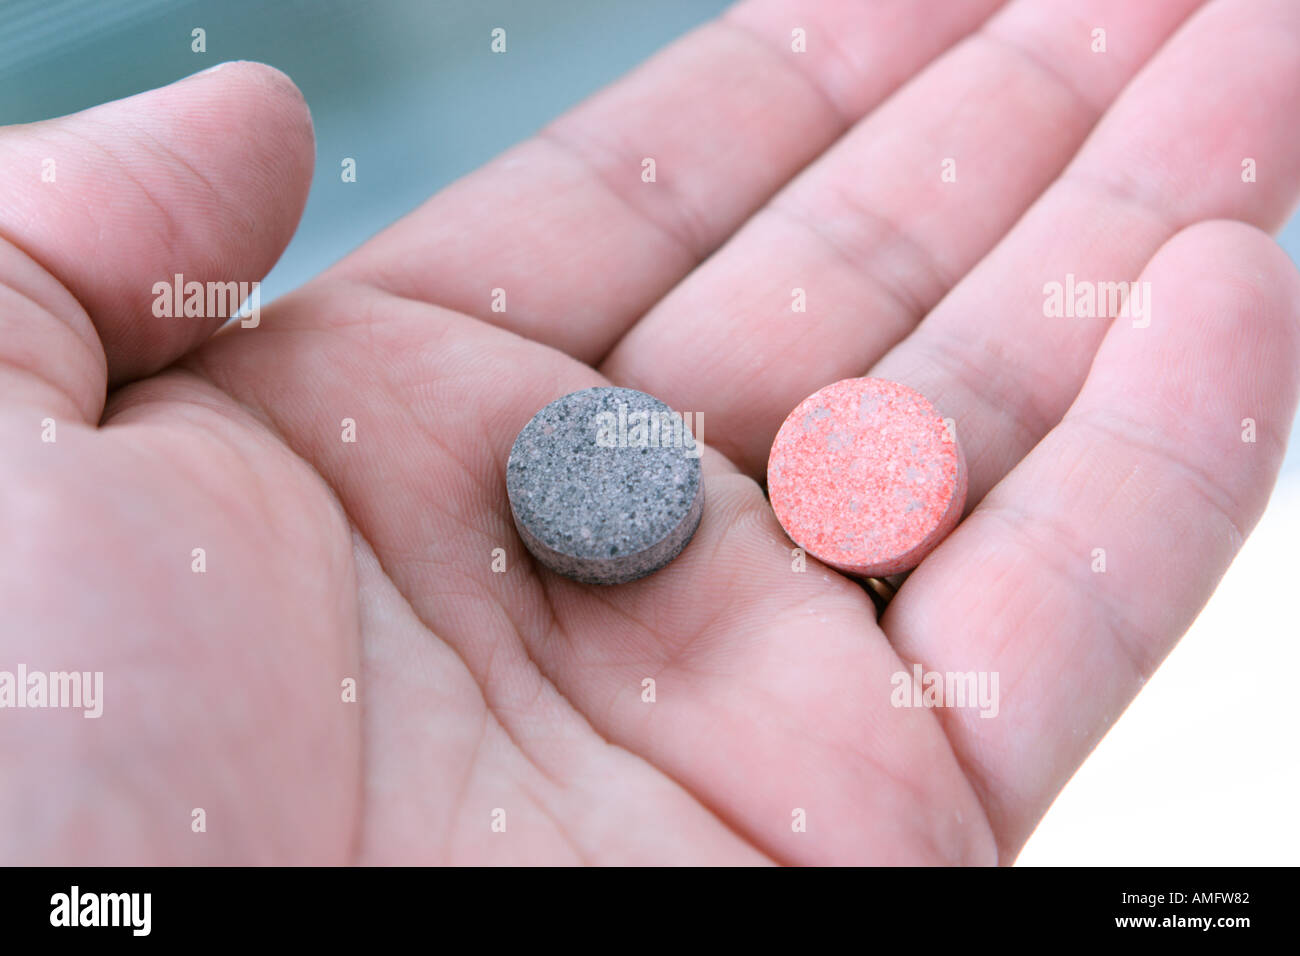 antacid tablets in hand - Stock Image